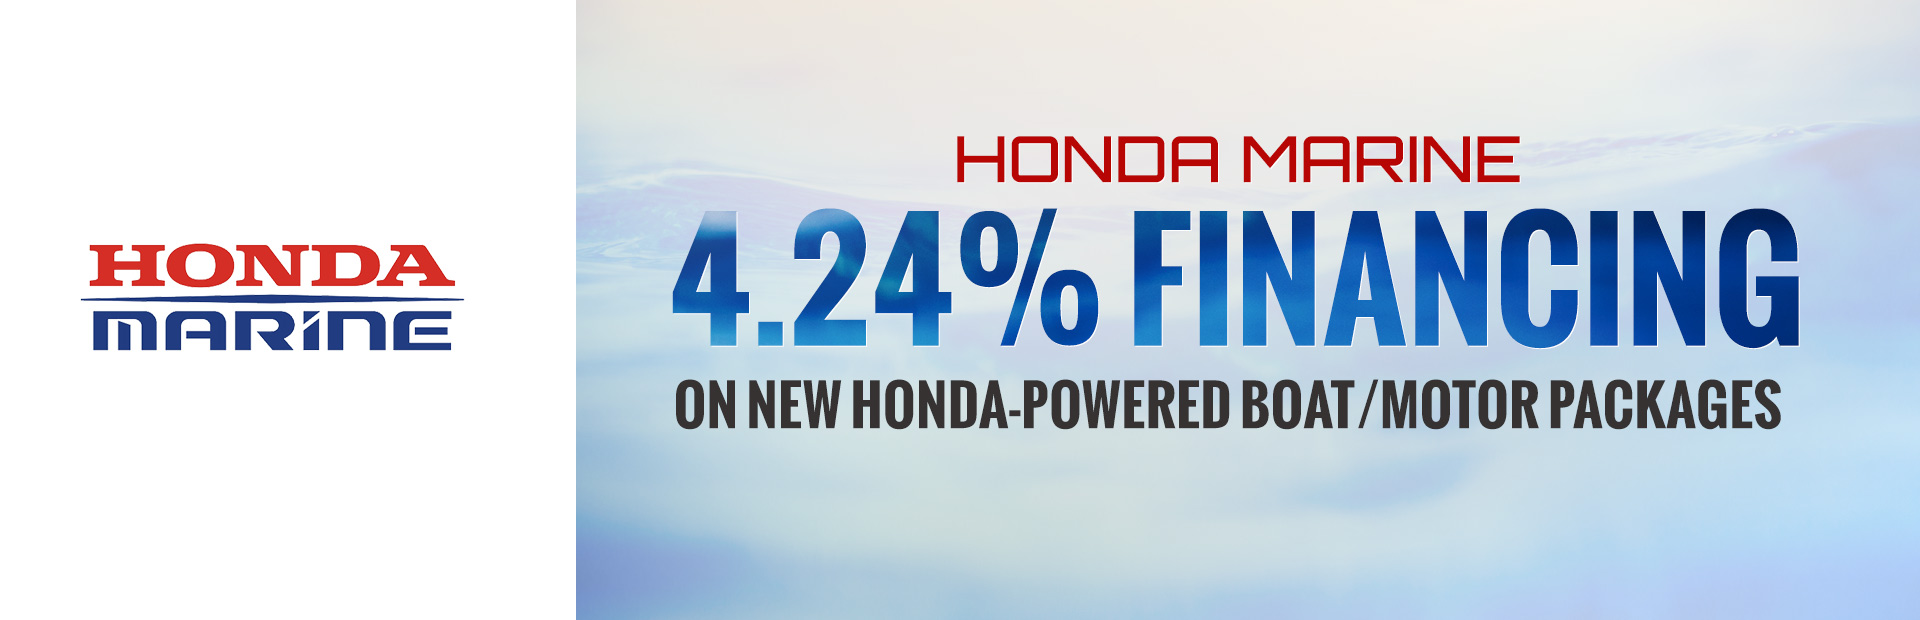 Honda Marine: Honda Marine 4.24% Financing on New Honda-Powered